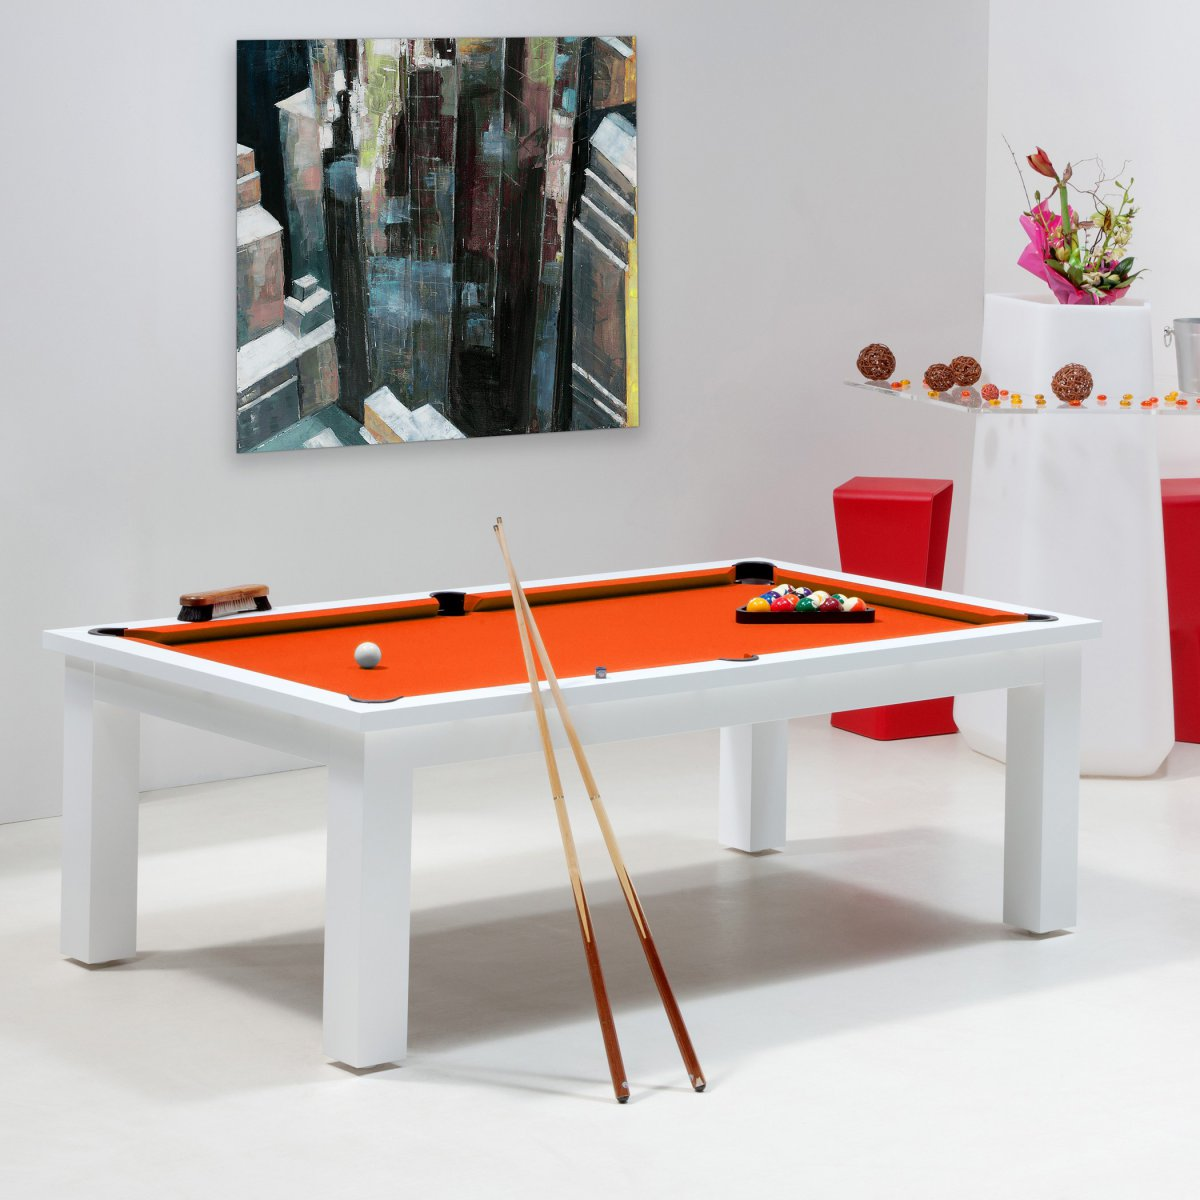 Billard jeux de billard table billard blanc new york for Table billard convertible belgique